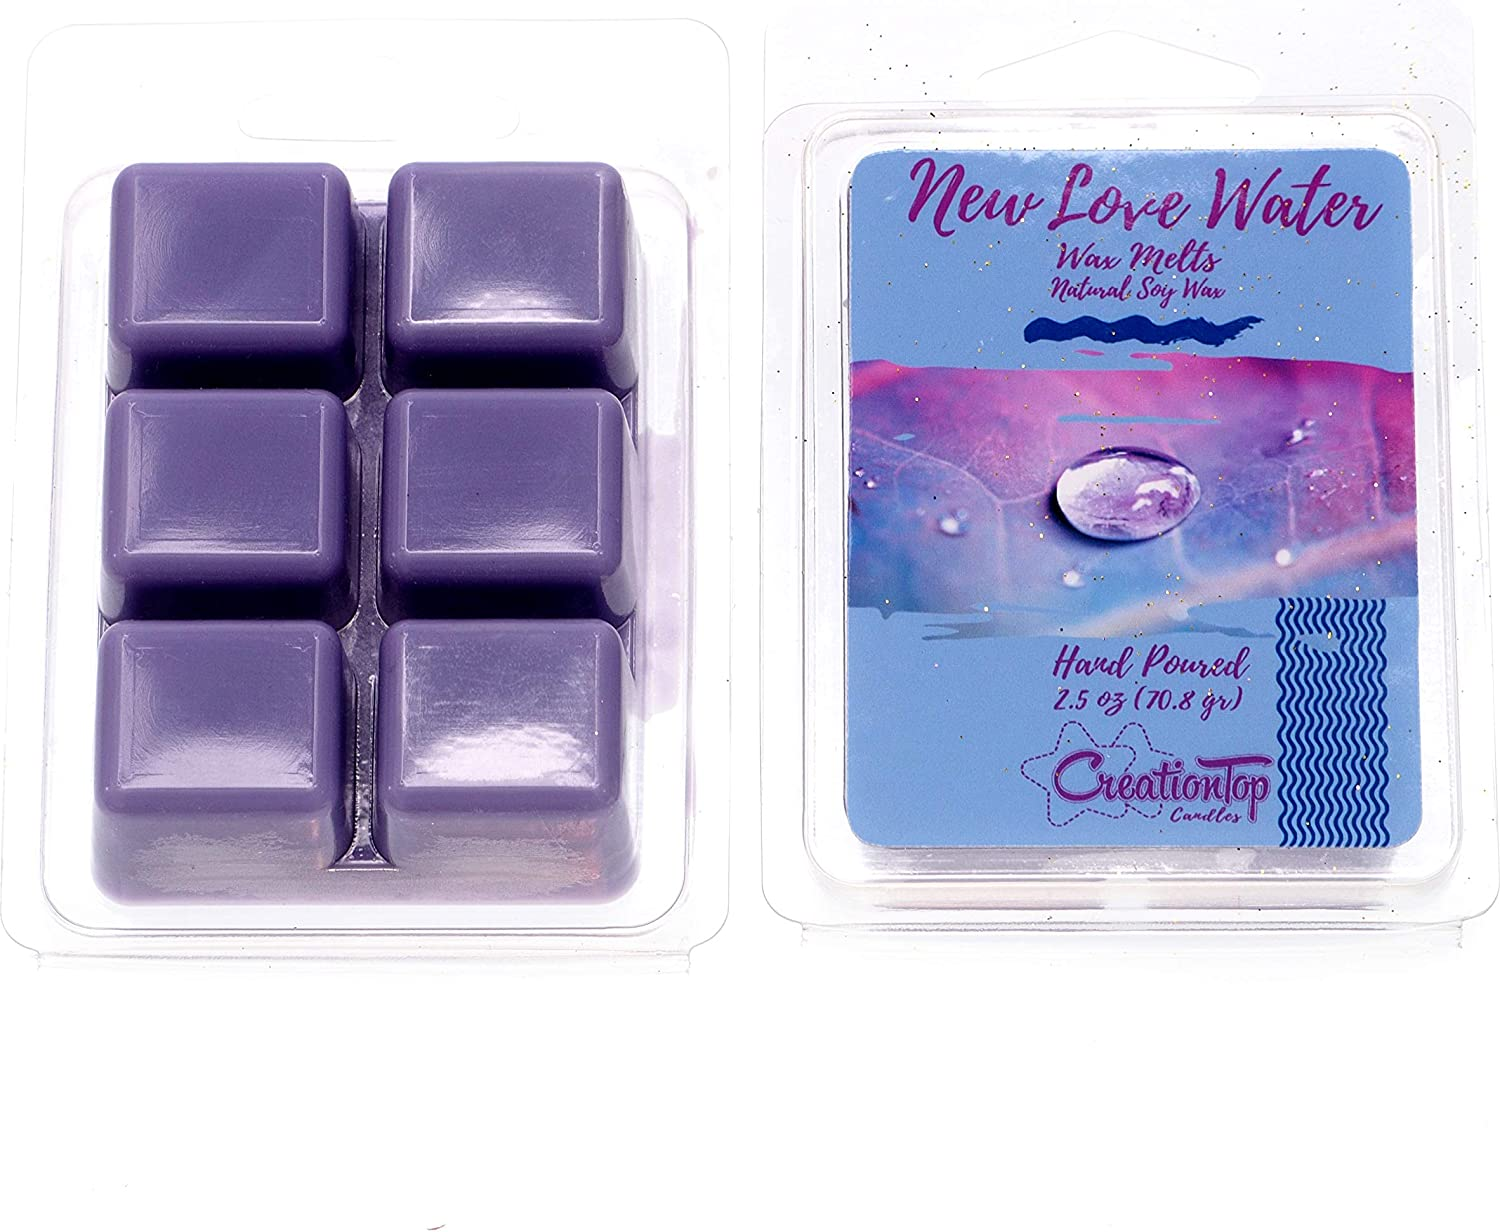 Scented Soy Wax Cubes Lavender Scented Wax Melts 2 Pack with FREE SHIPPING Free Shipping Compare to Scentsy\u00ae Bars